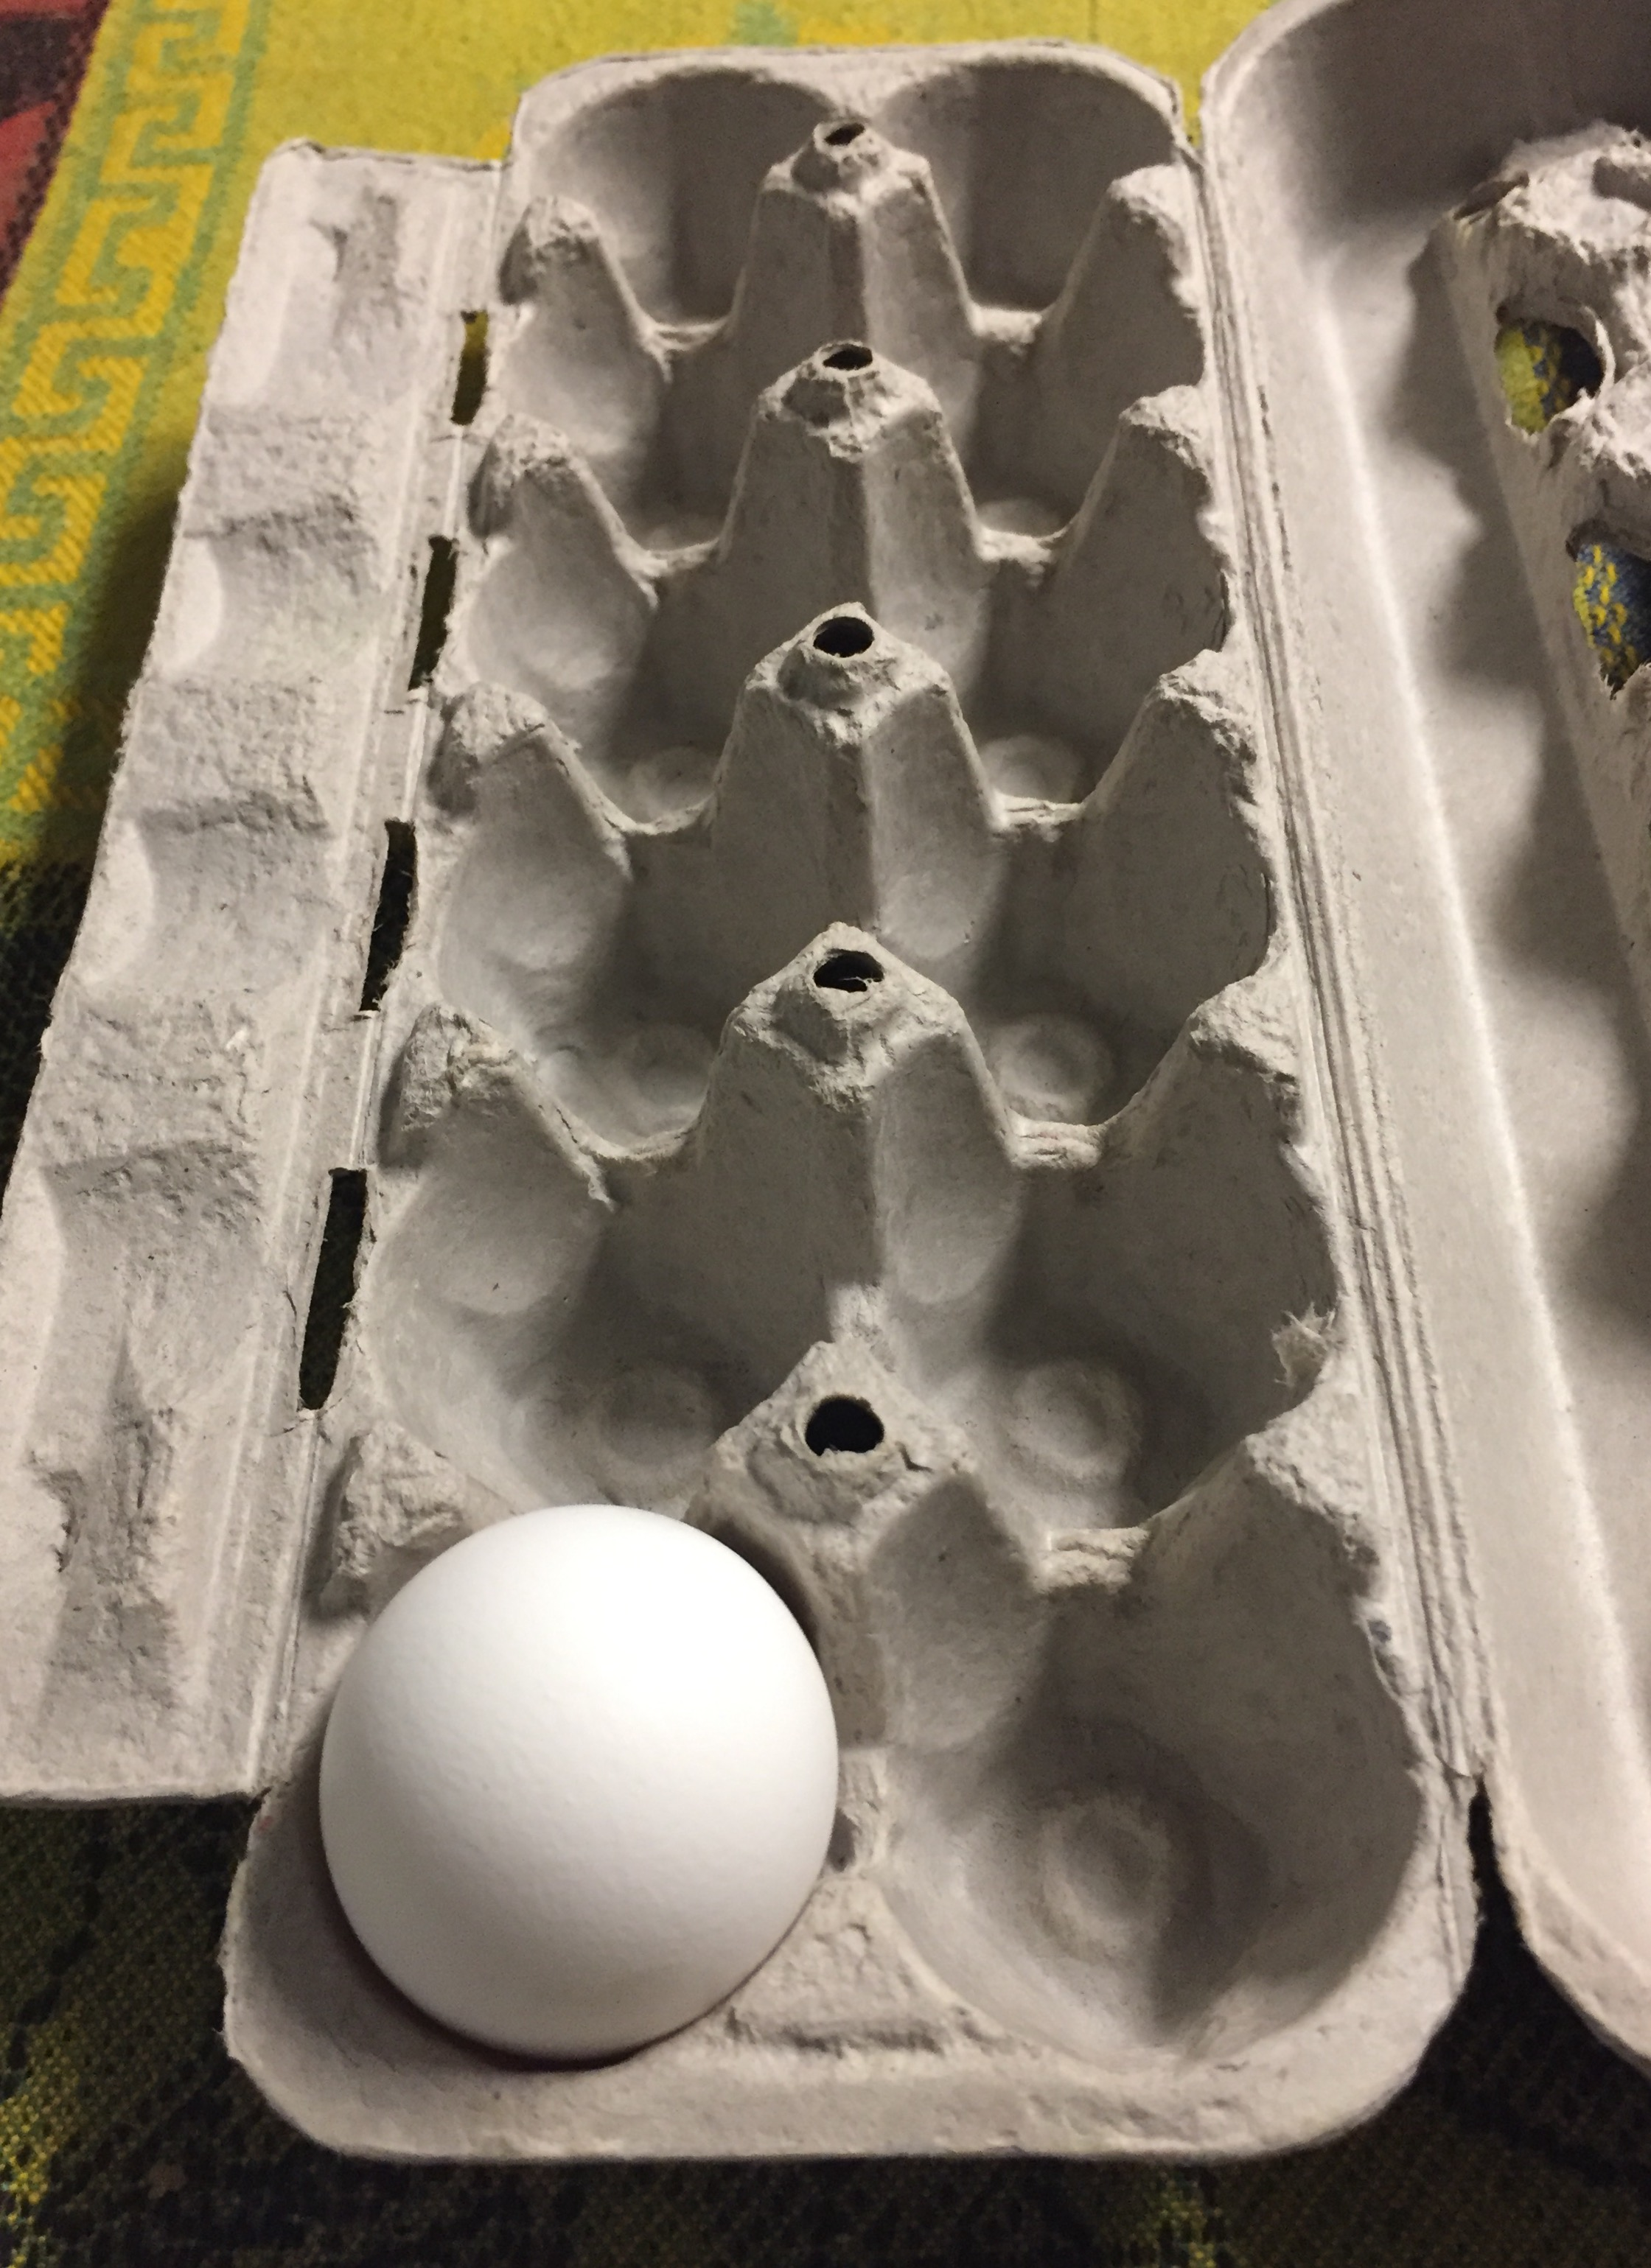 One egg in an egg carton